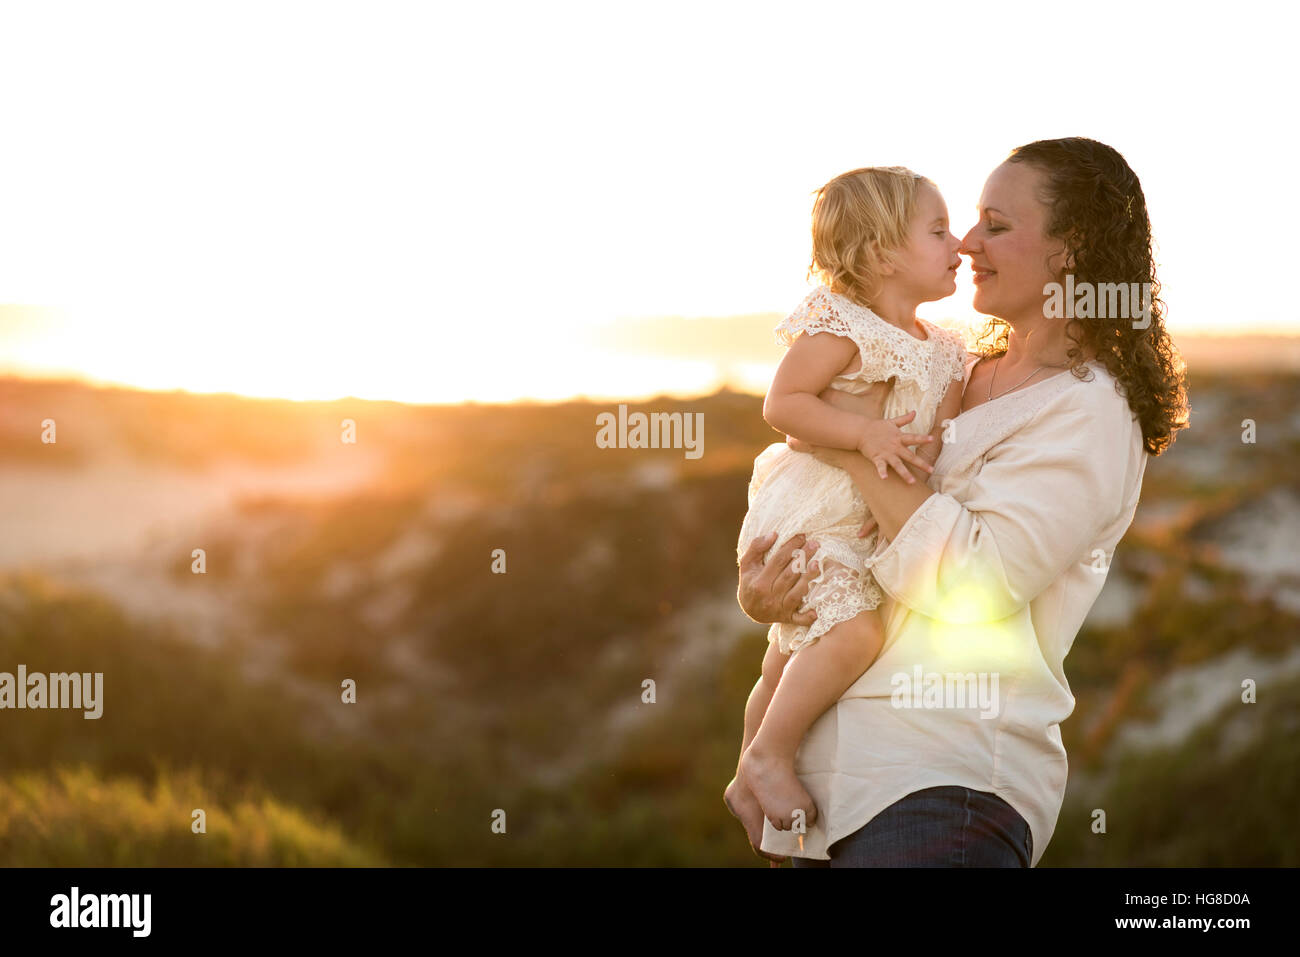 Mother and daughter rubbing noses while standing against clear sky - Stock Image